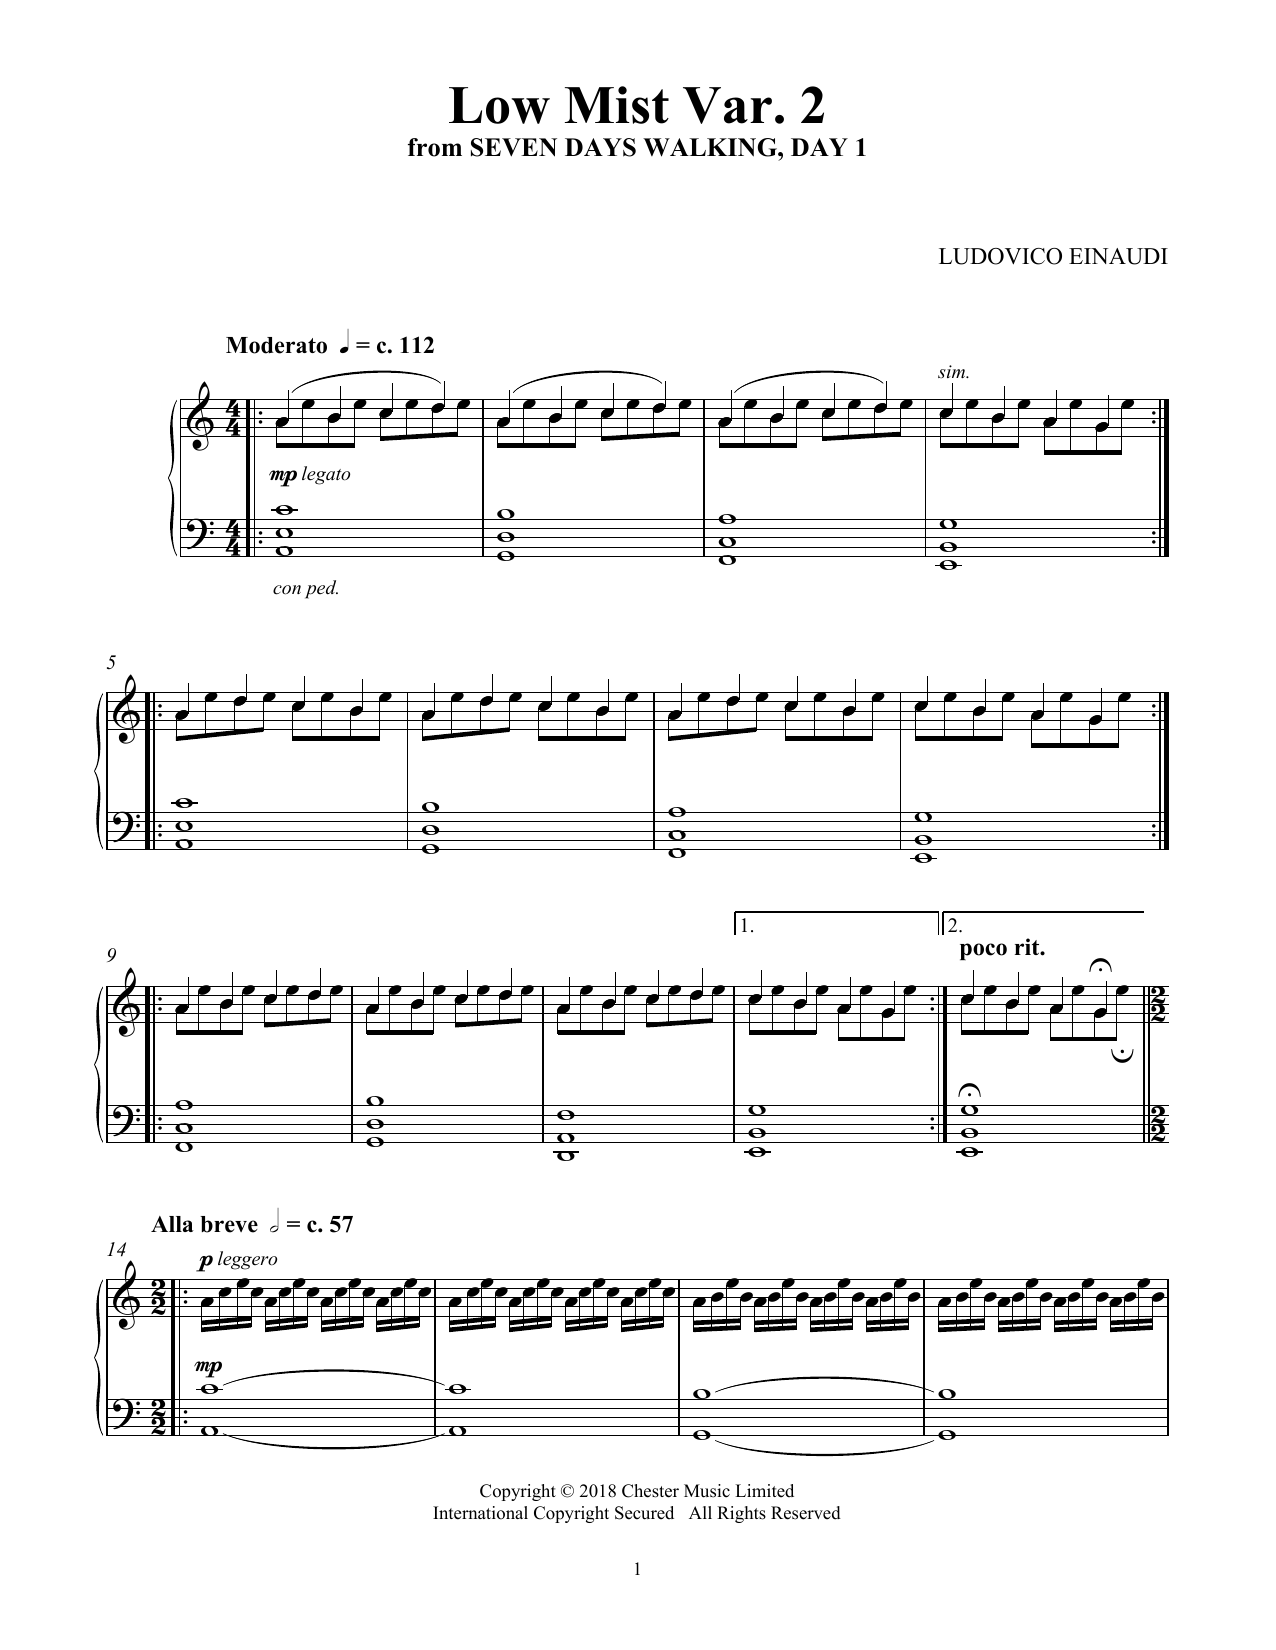 Ludovico Einaudi Low Mist Var 2 From Seven Days Walking Day 1 Music Notes In 2021 Sheet Music Notes Sheet Music Music Notes